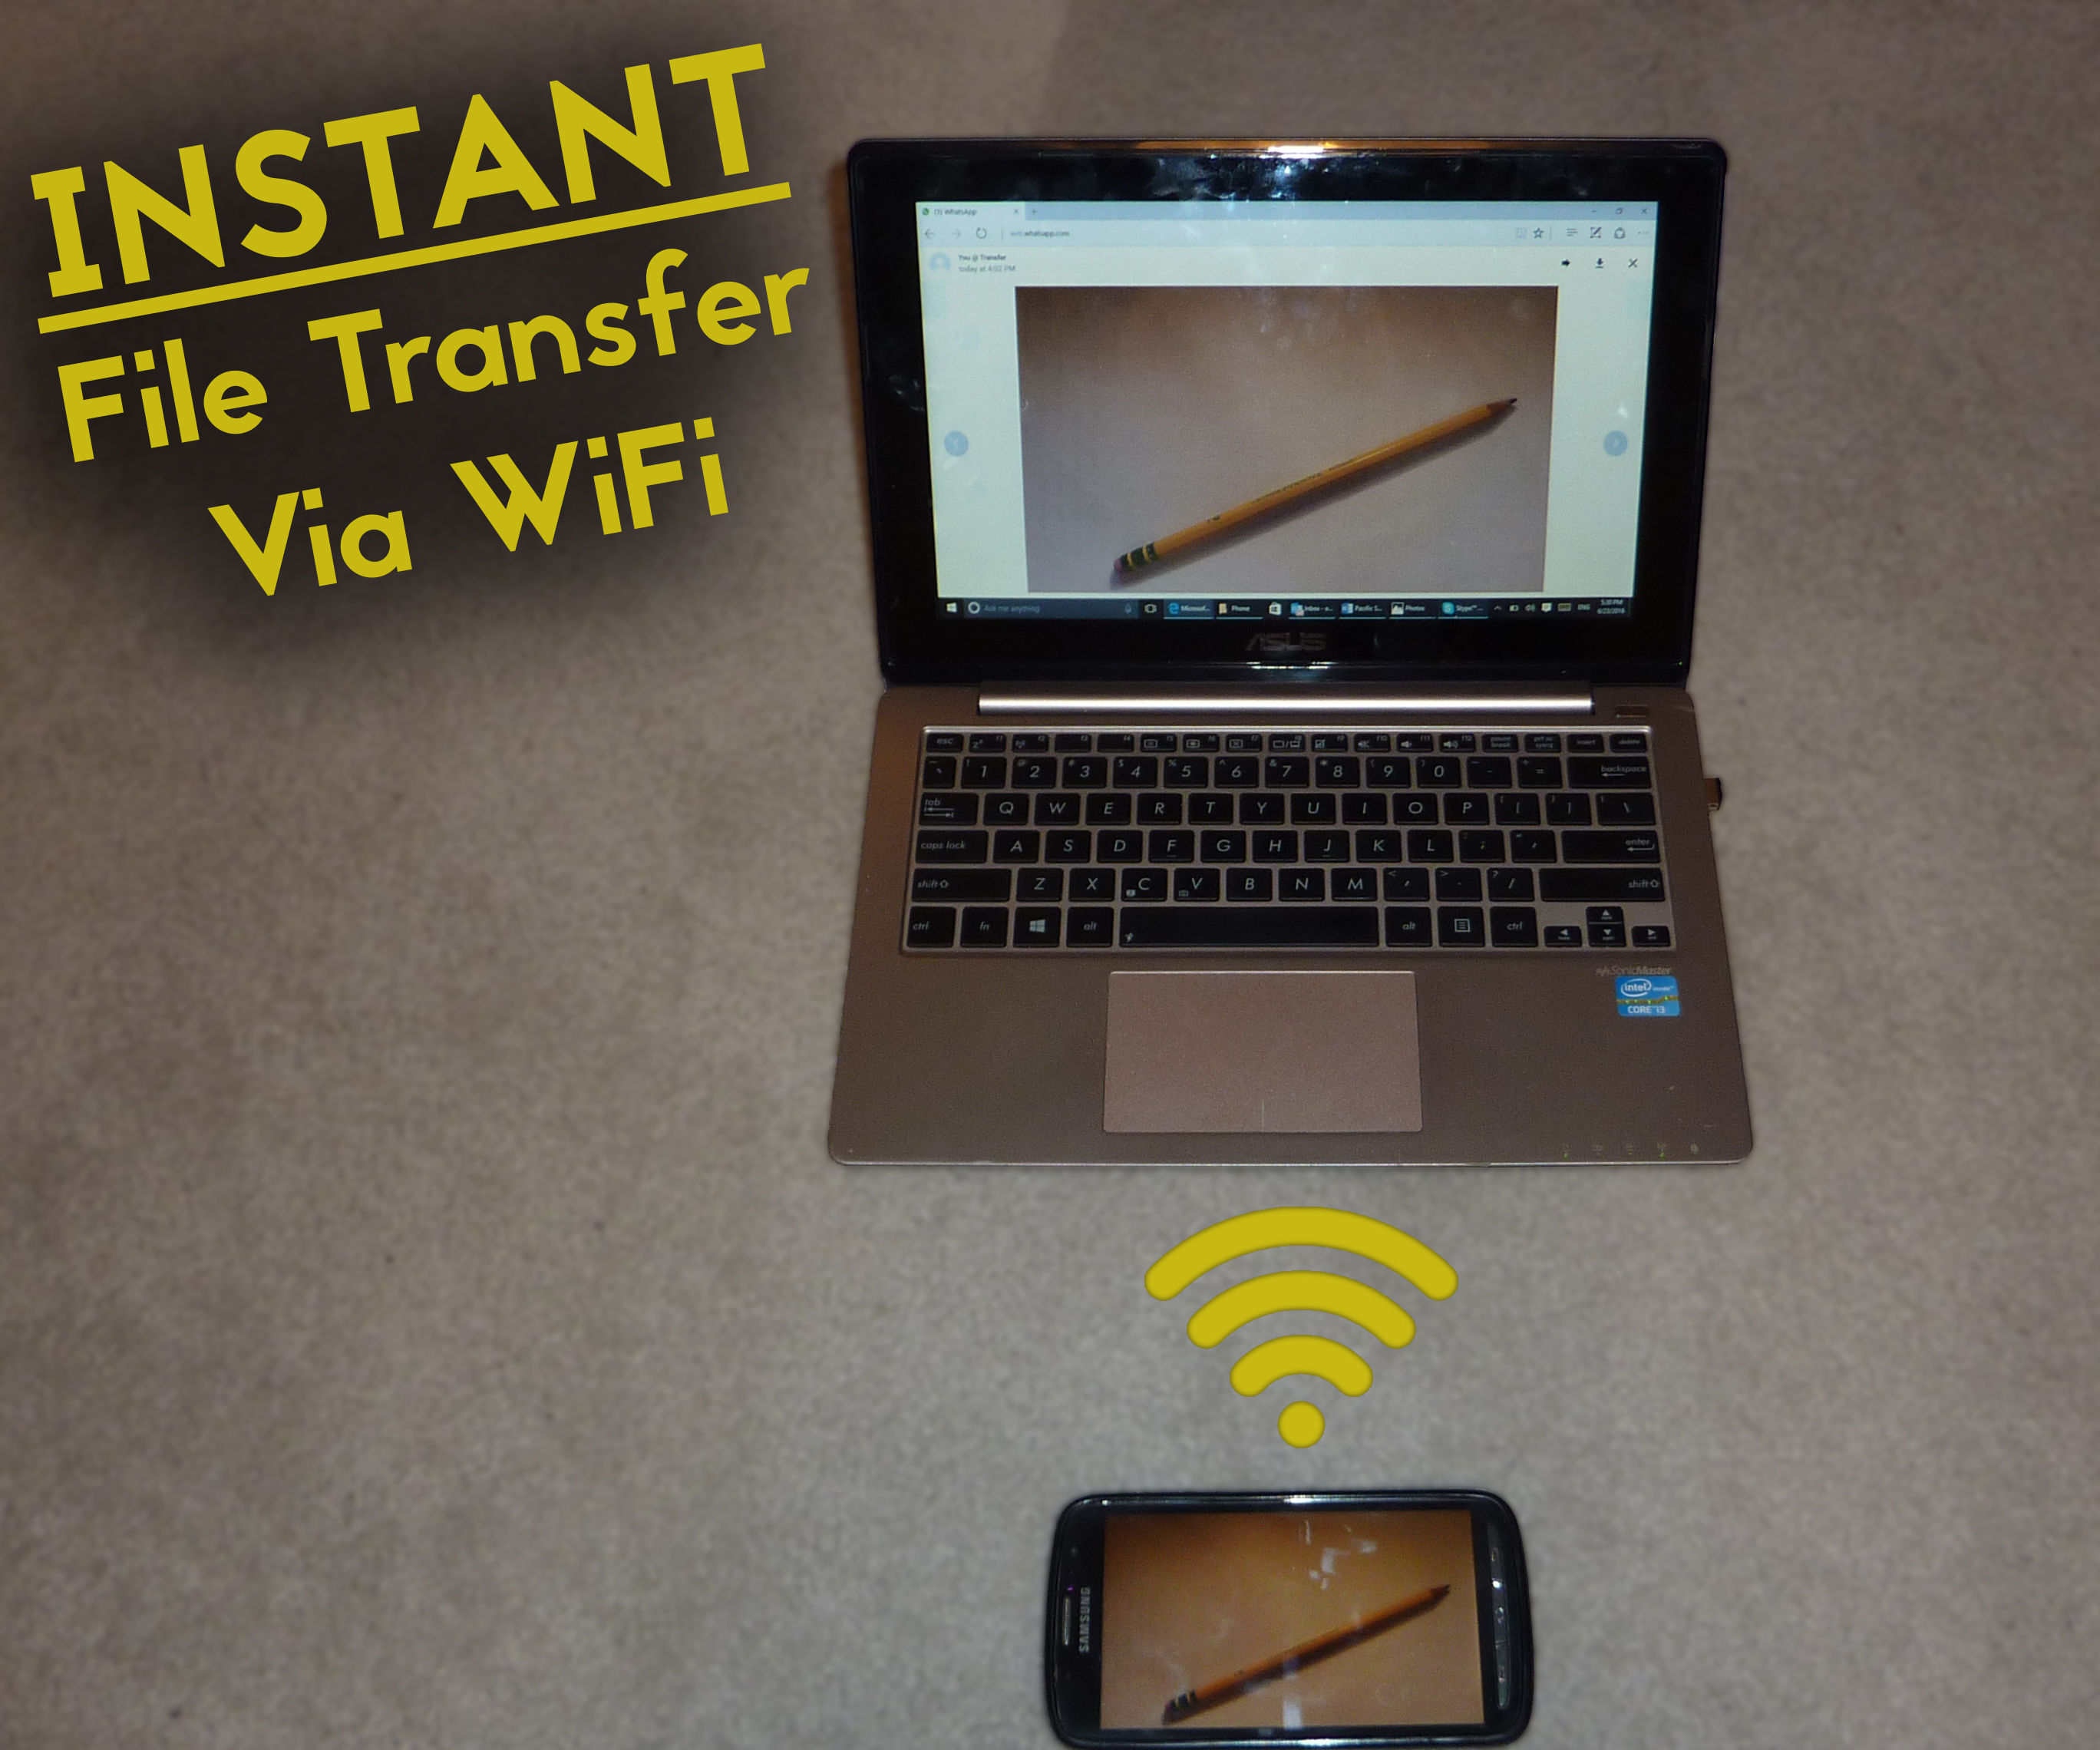 How to Instantly Tranfer Images Over Wi-Fi